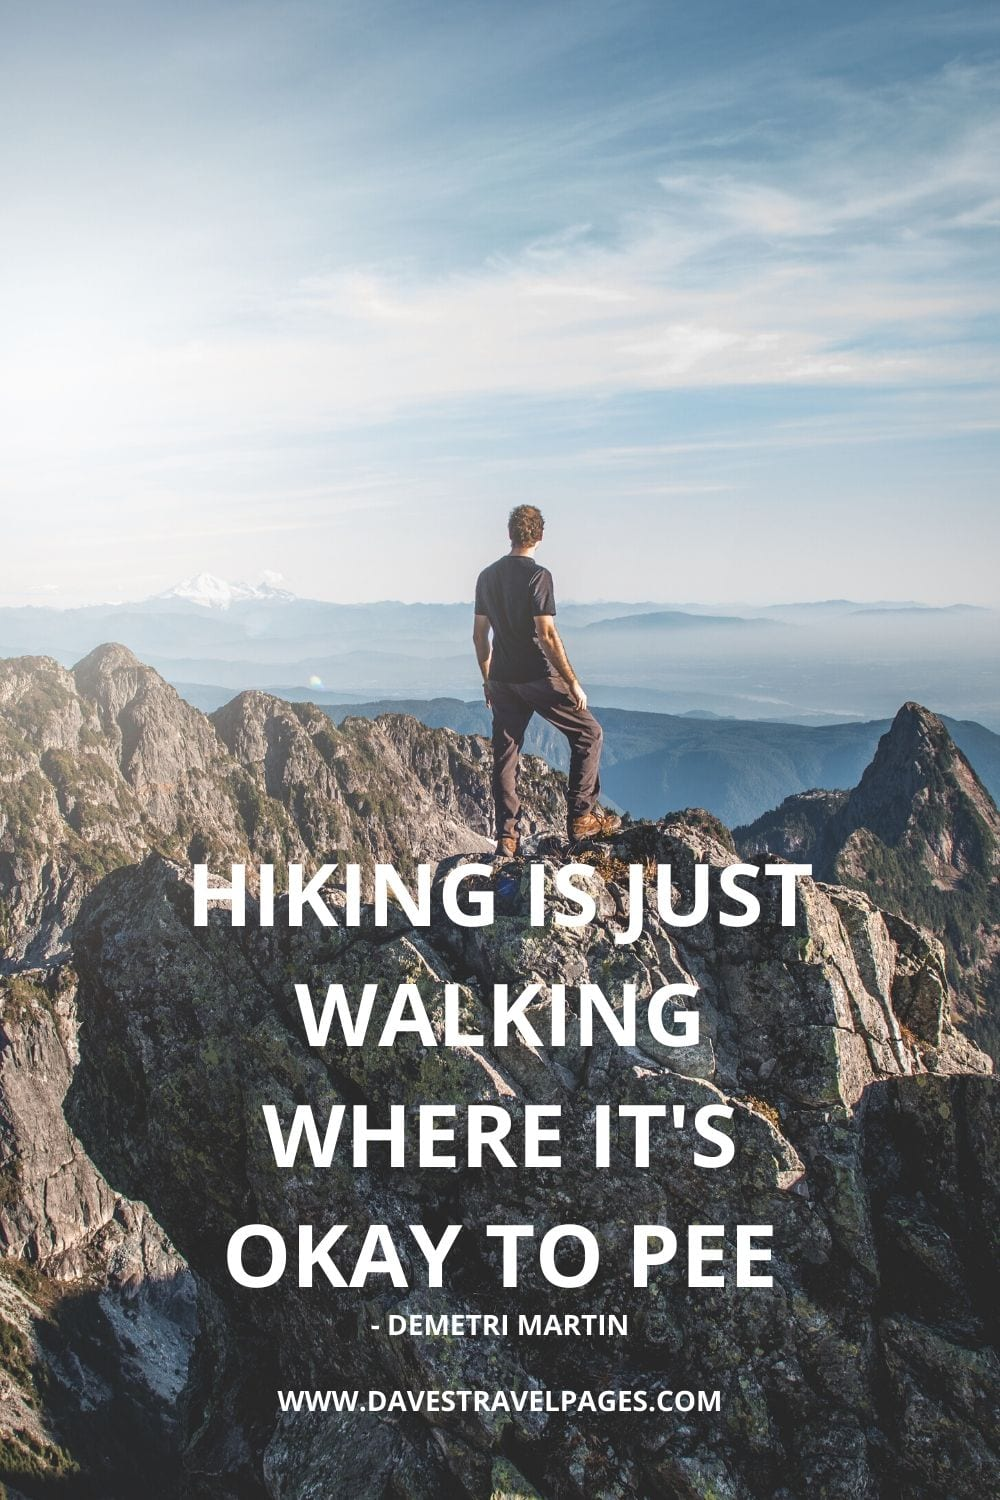 Funny hiking quotes: Hiking is just walking where it's okay to pee - Demetri Martin